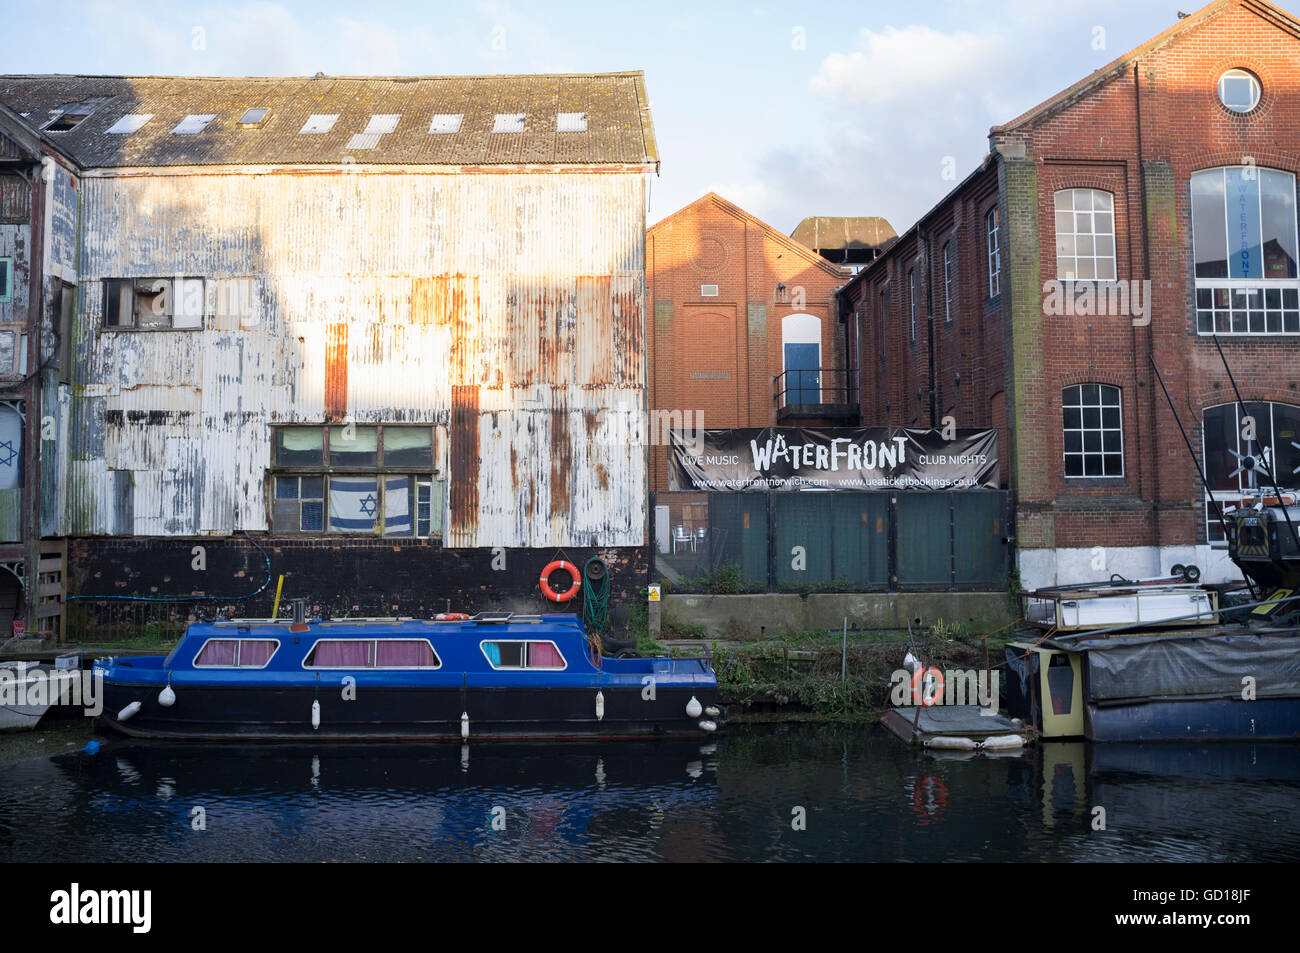 The rear of The Waterfront music venue in Norwich, Norfolk from the River Wensum - Stock Image